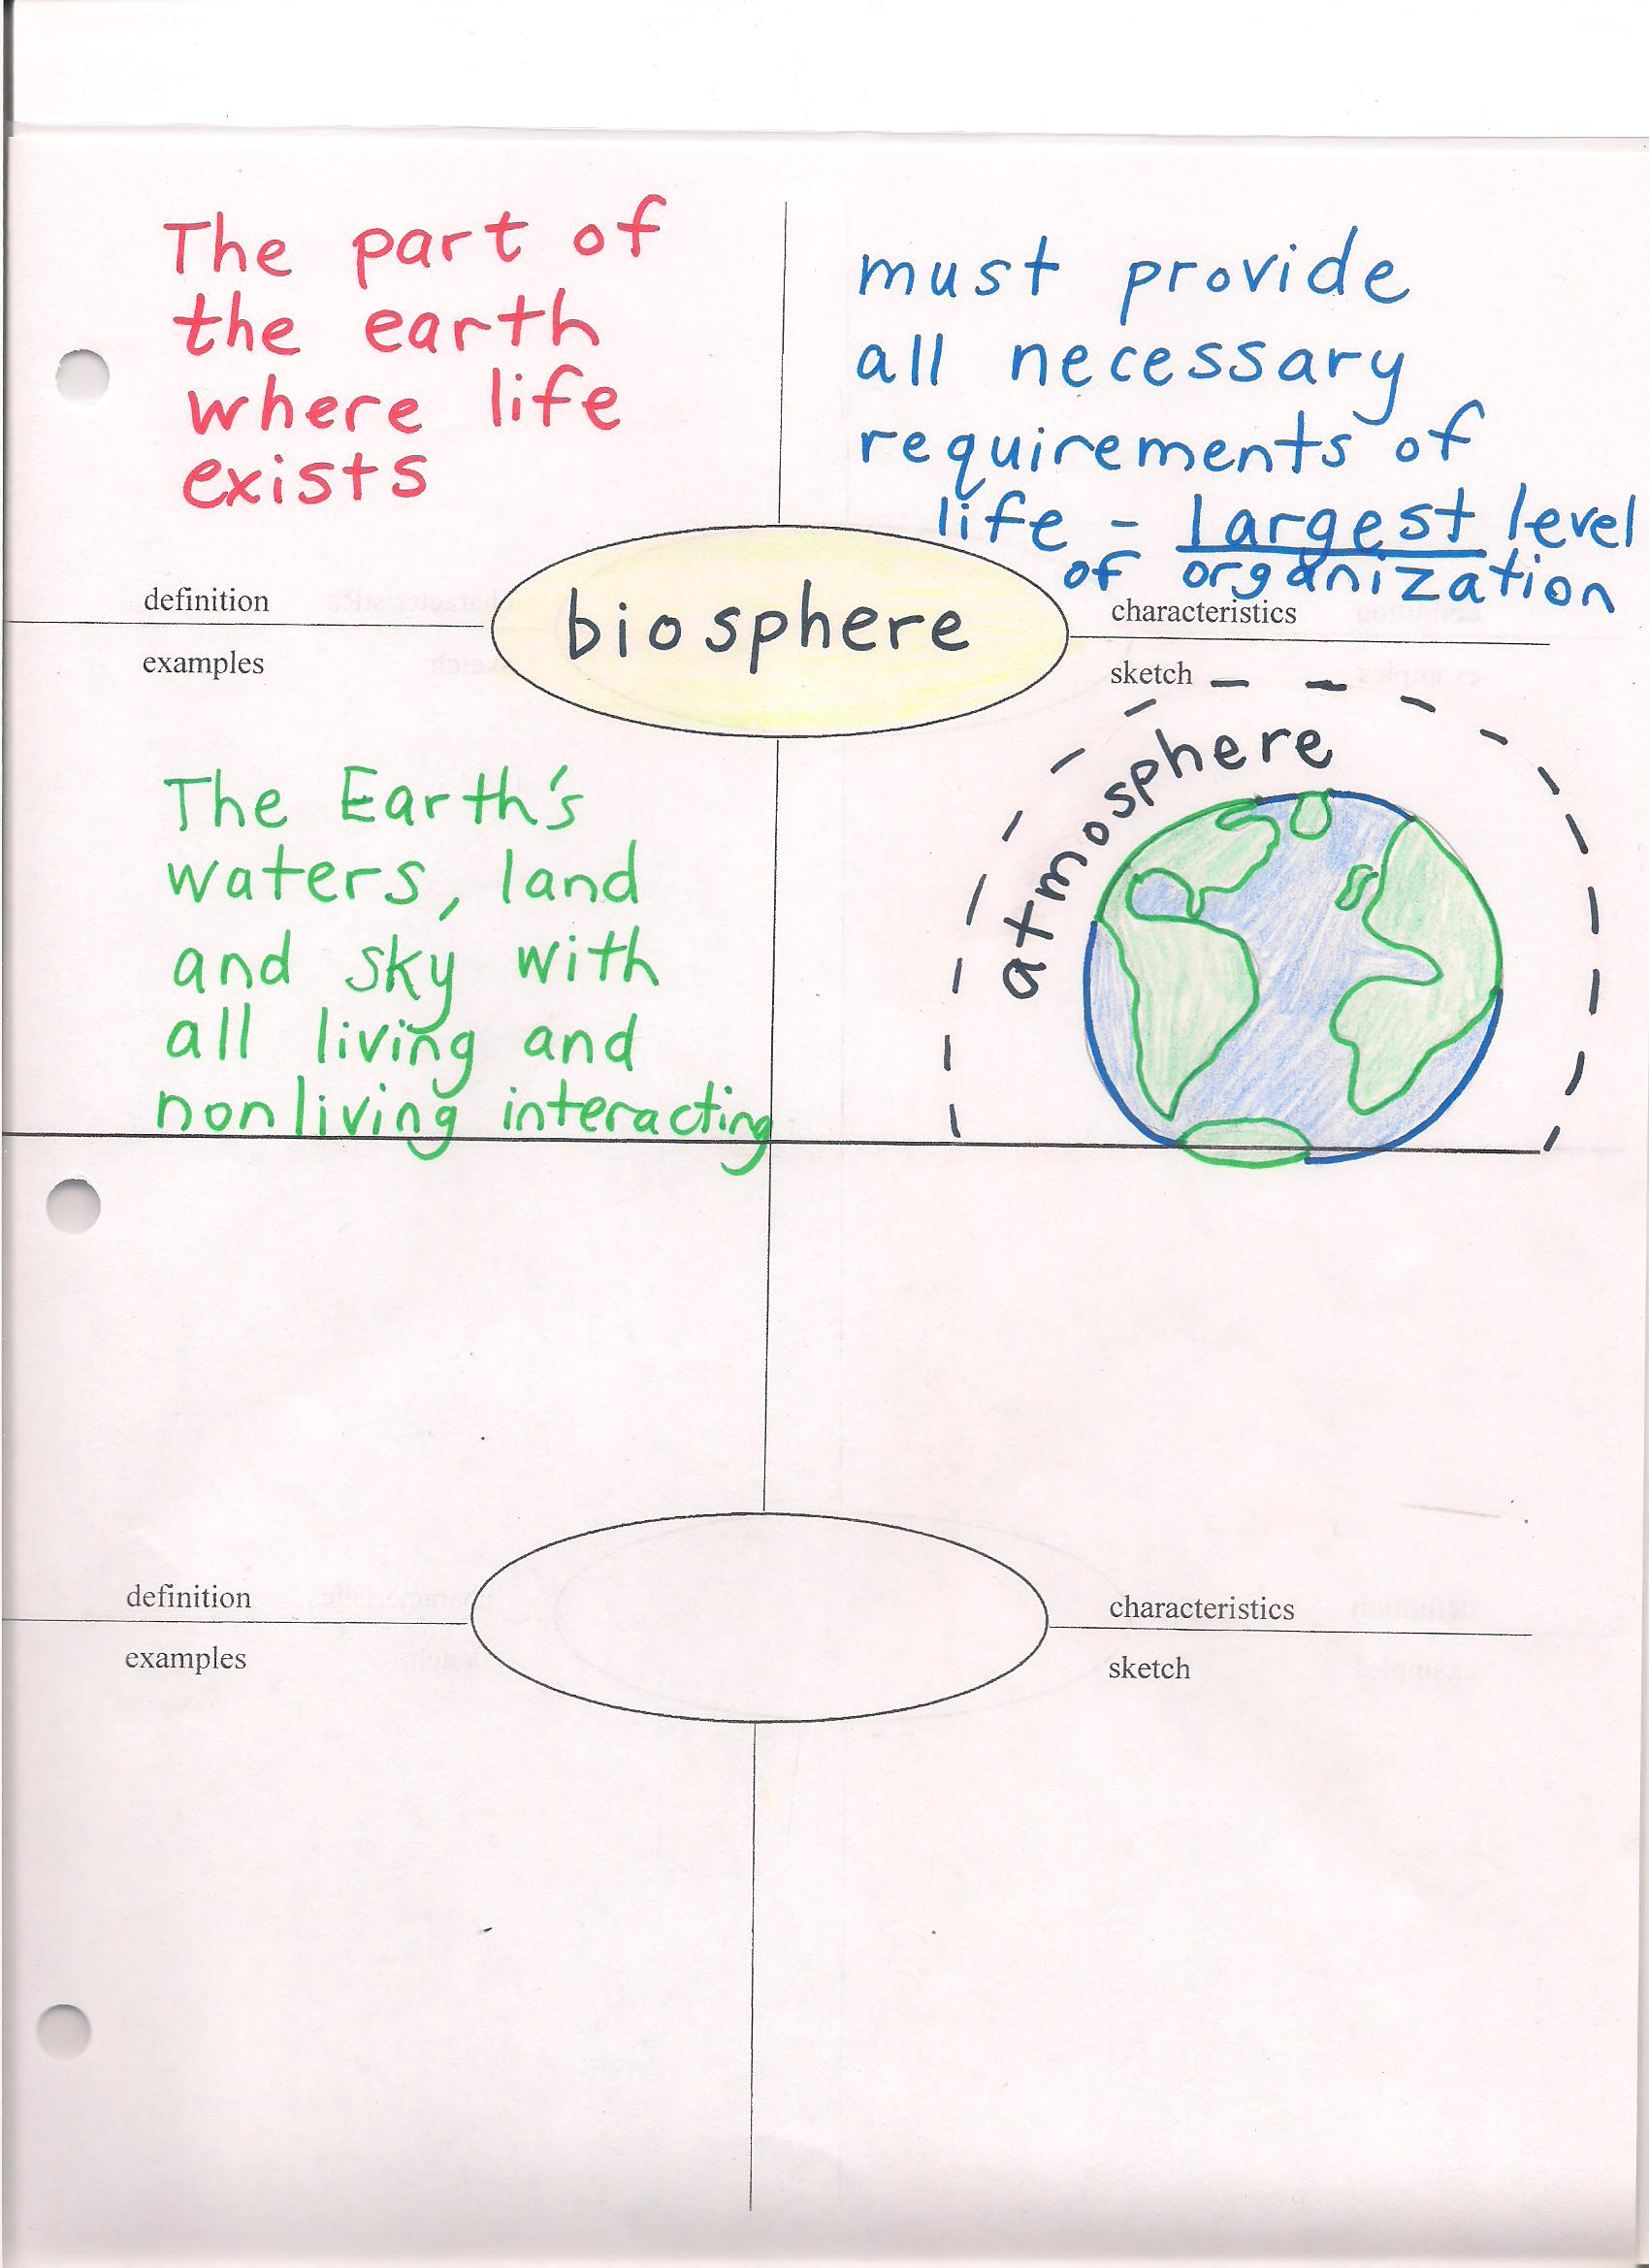 Braddocks business ecology levels of organization of life frayer ecology levels of organization of life frayer model ccuart Image collections